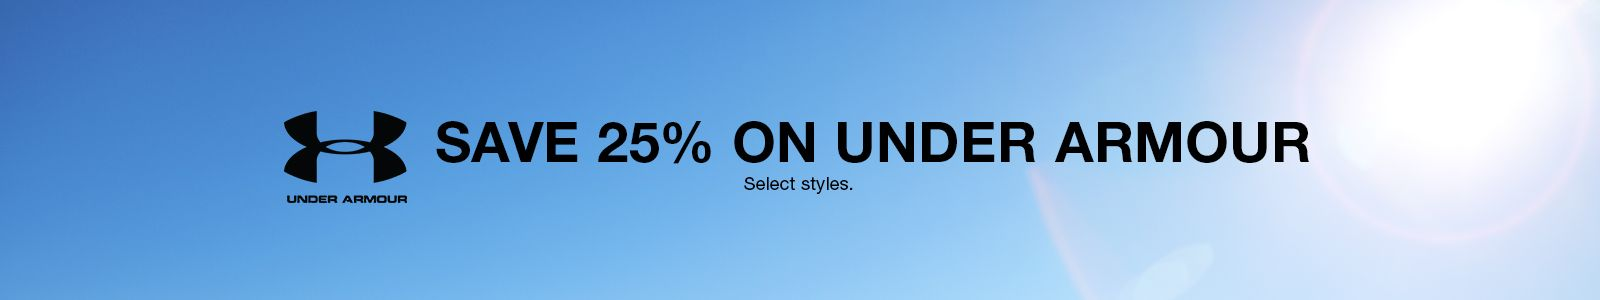 Save 25 percent on Under Armour, Select styles